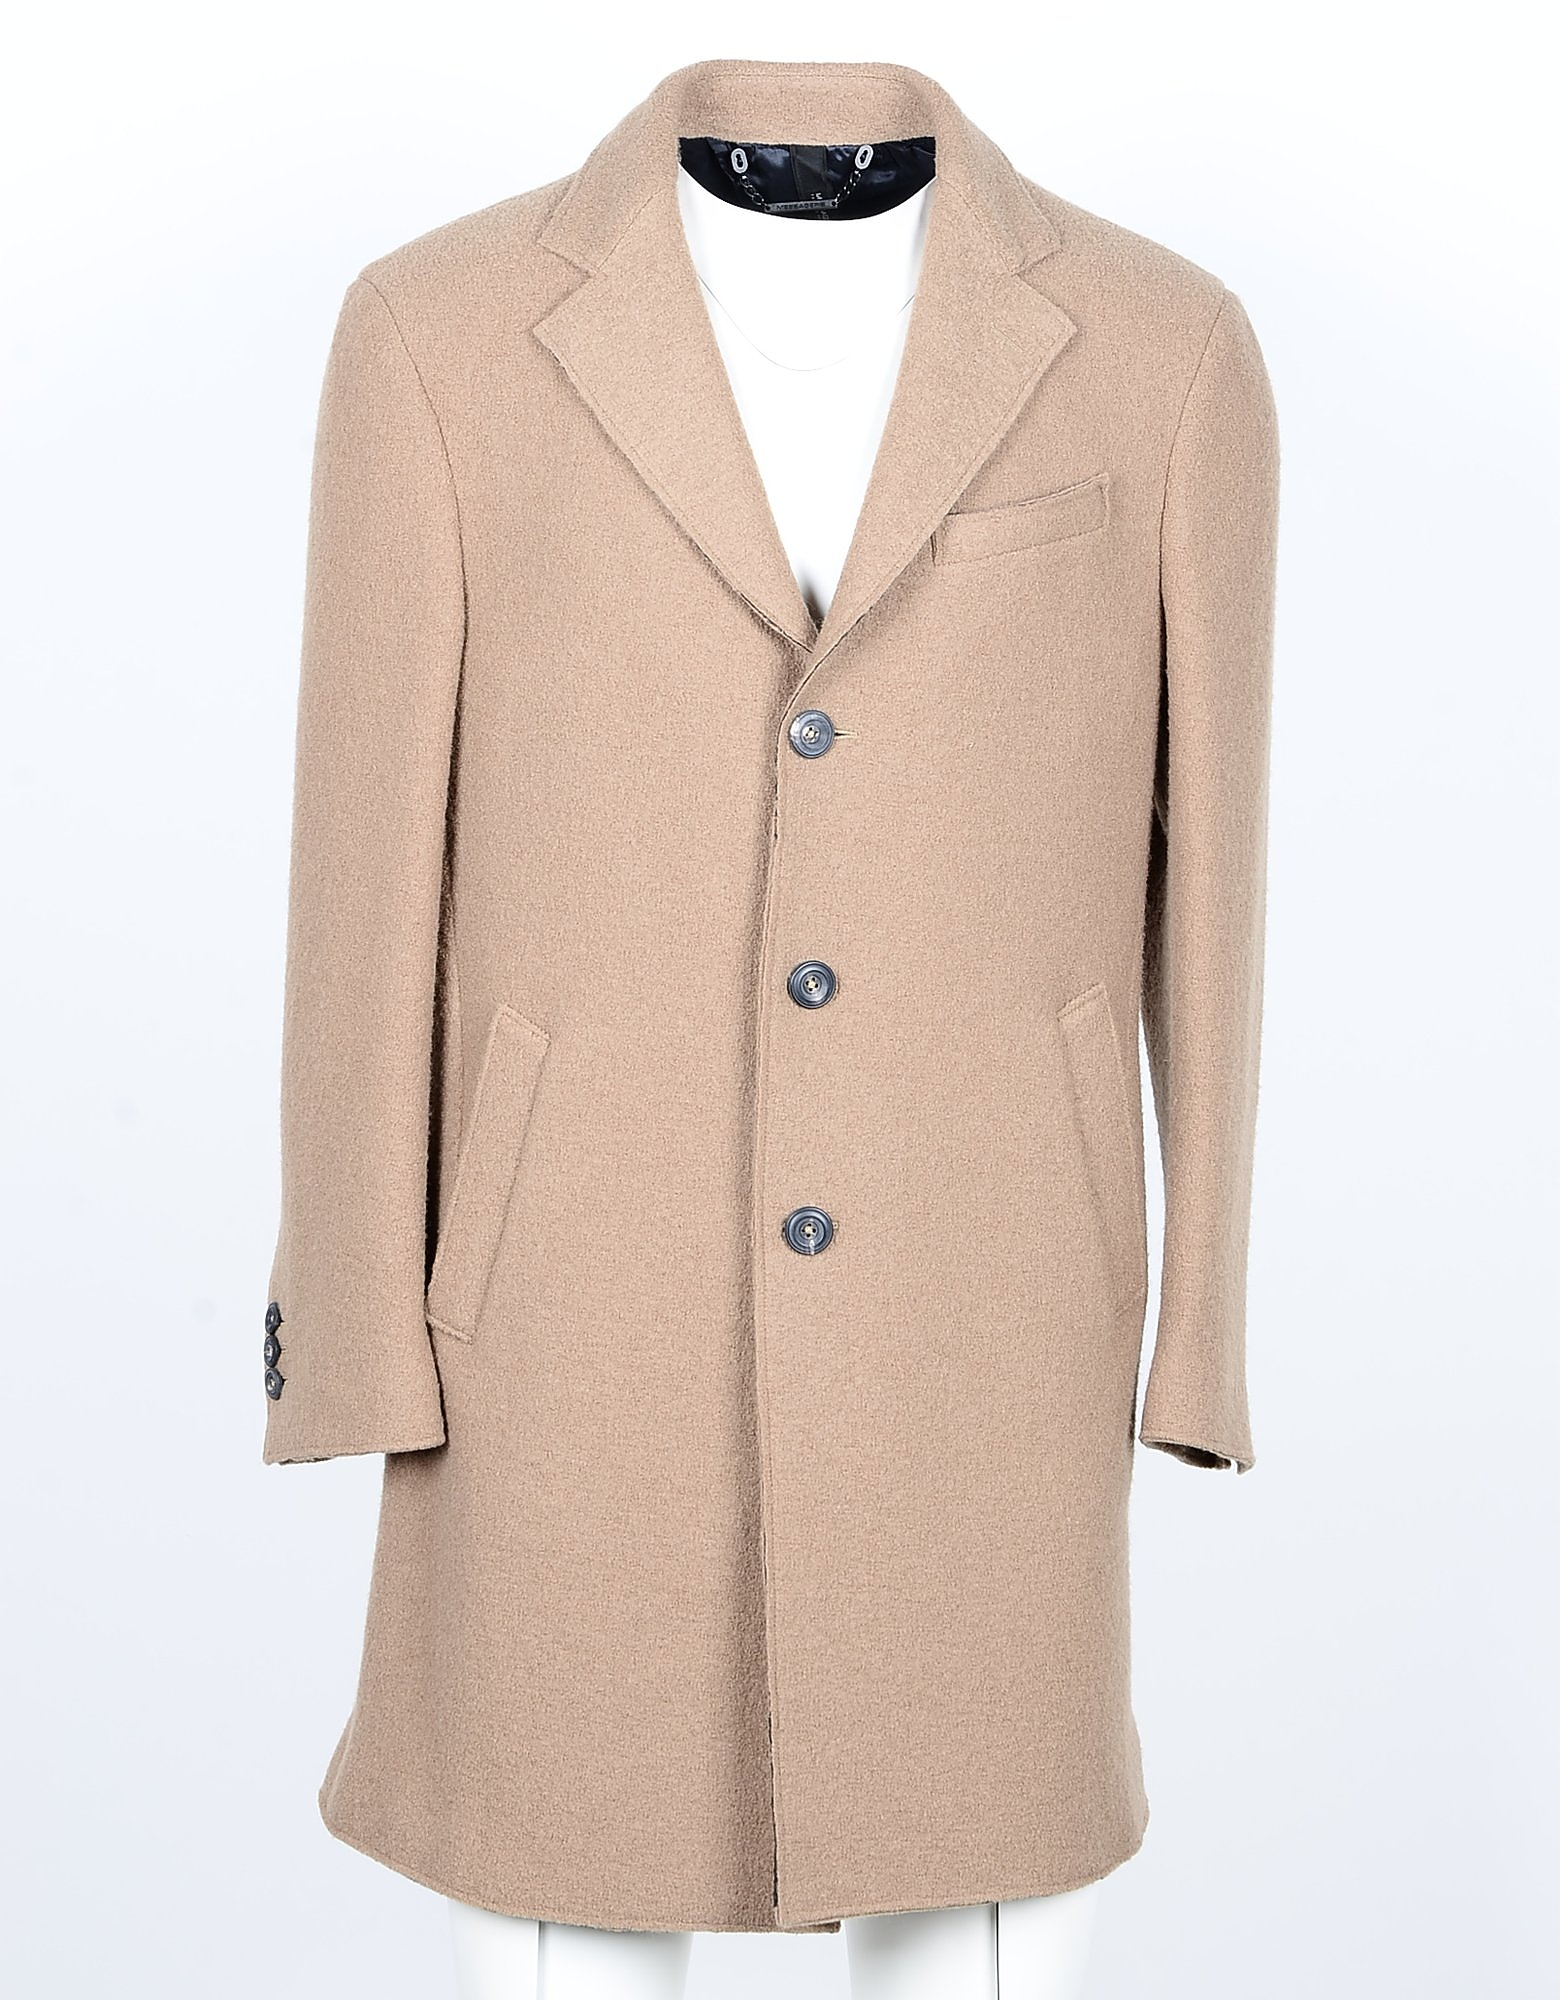 Messagerie Designer Coats & Jackets, Men's Beige Coat